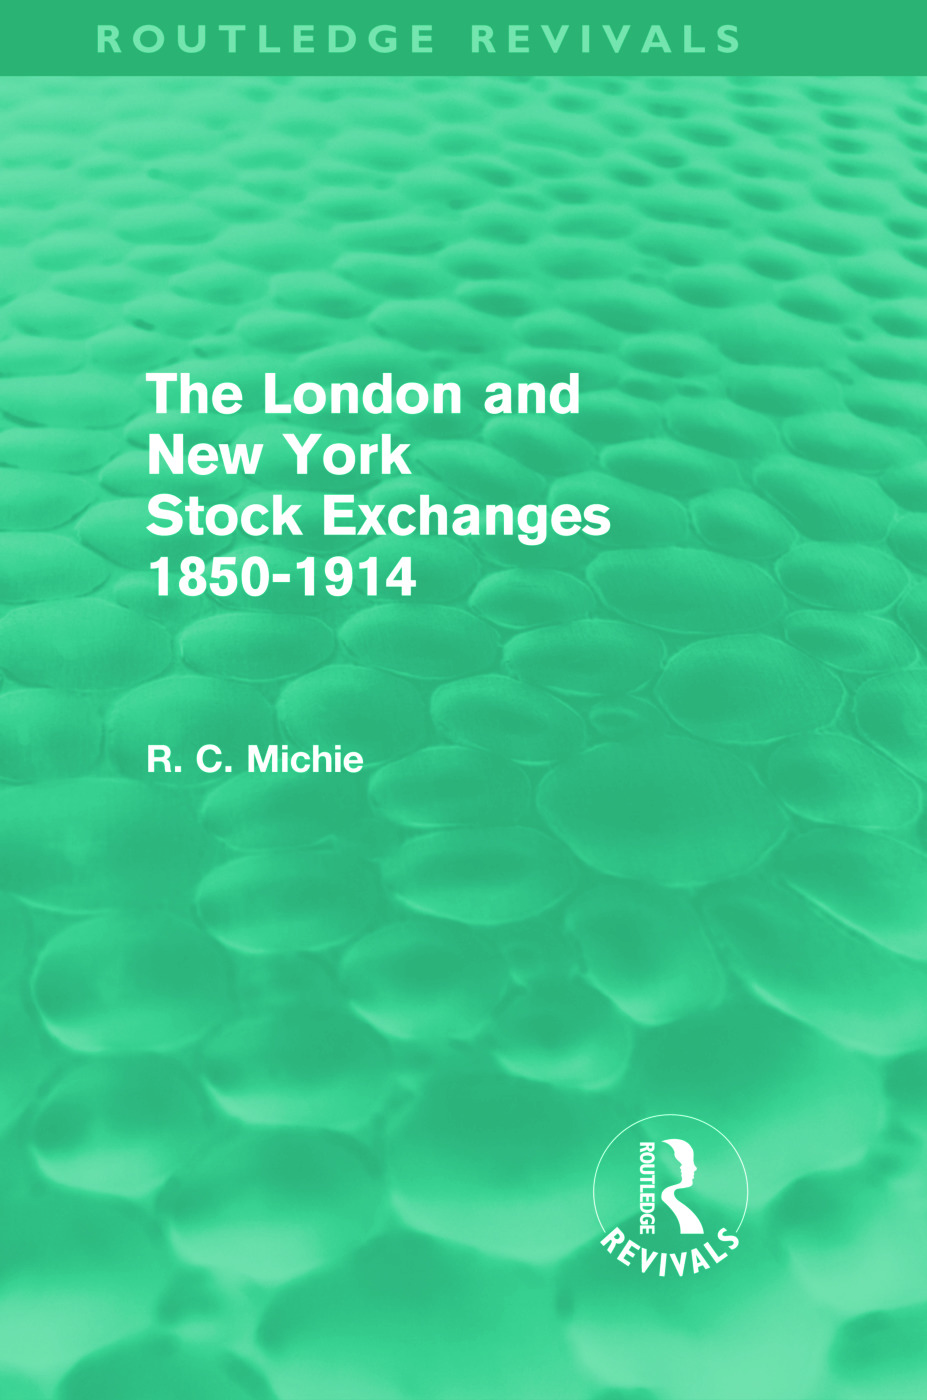 The London and New York Stock Exchanges 1850-1914 (Routledge Revivals) (Hardback) book cover